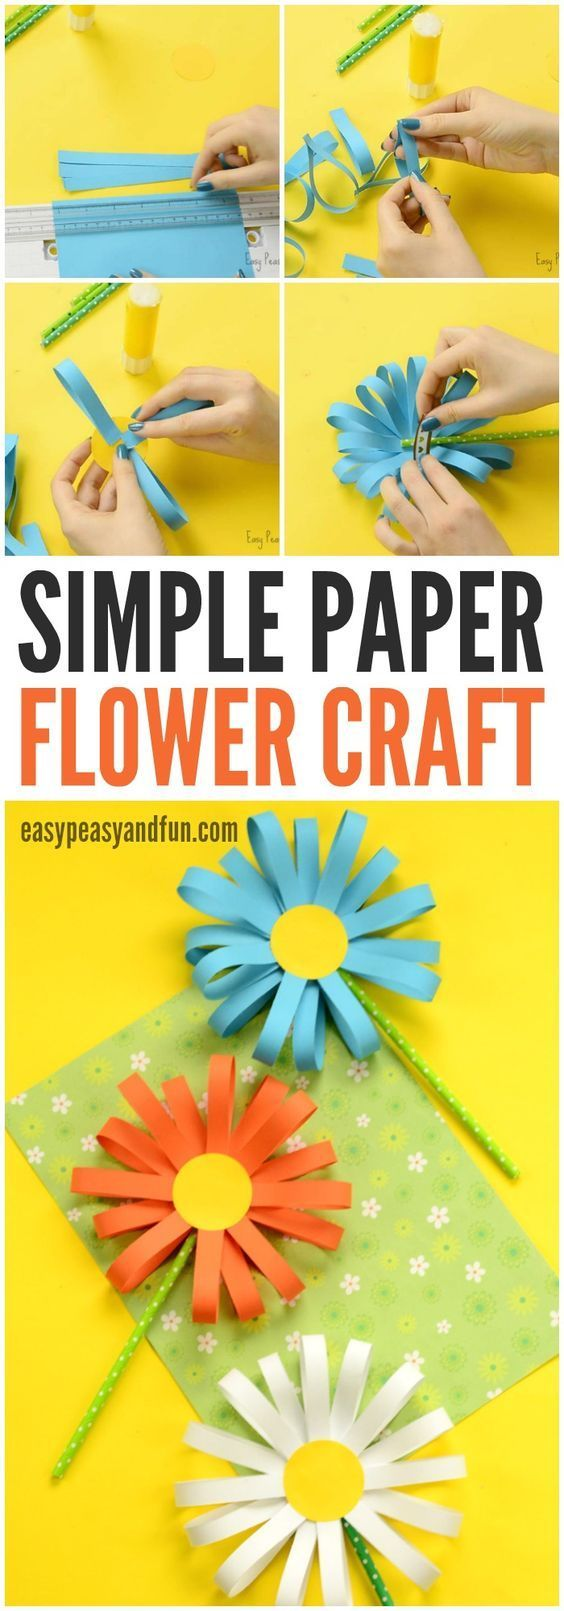 Paper flower craft kvety z papiera pinterest flower crafts simple paper flower craft a great springtime craft for older kids mightylinksfo